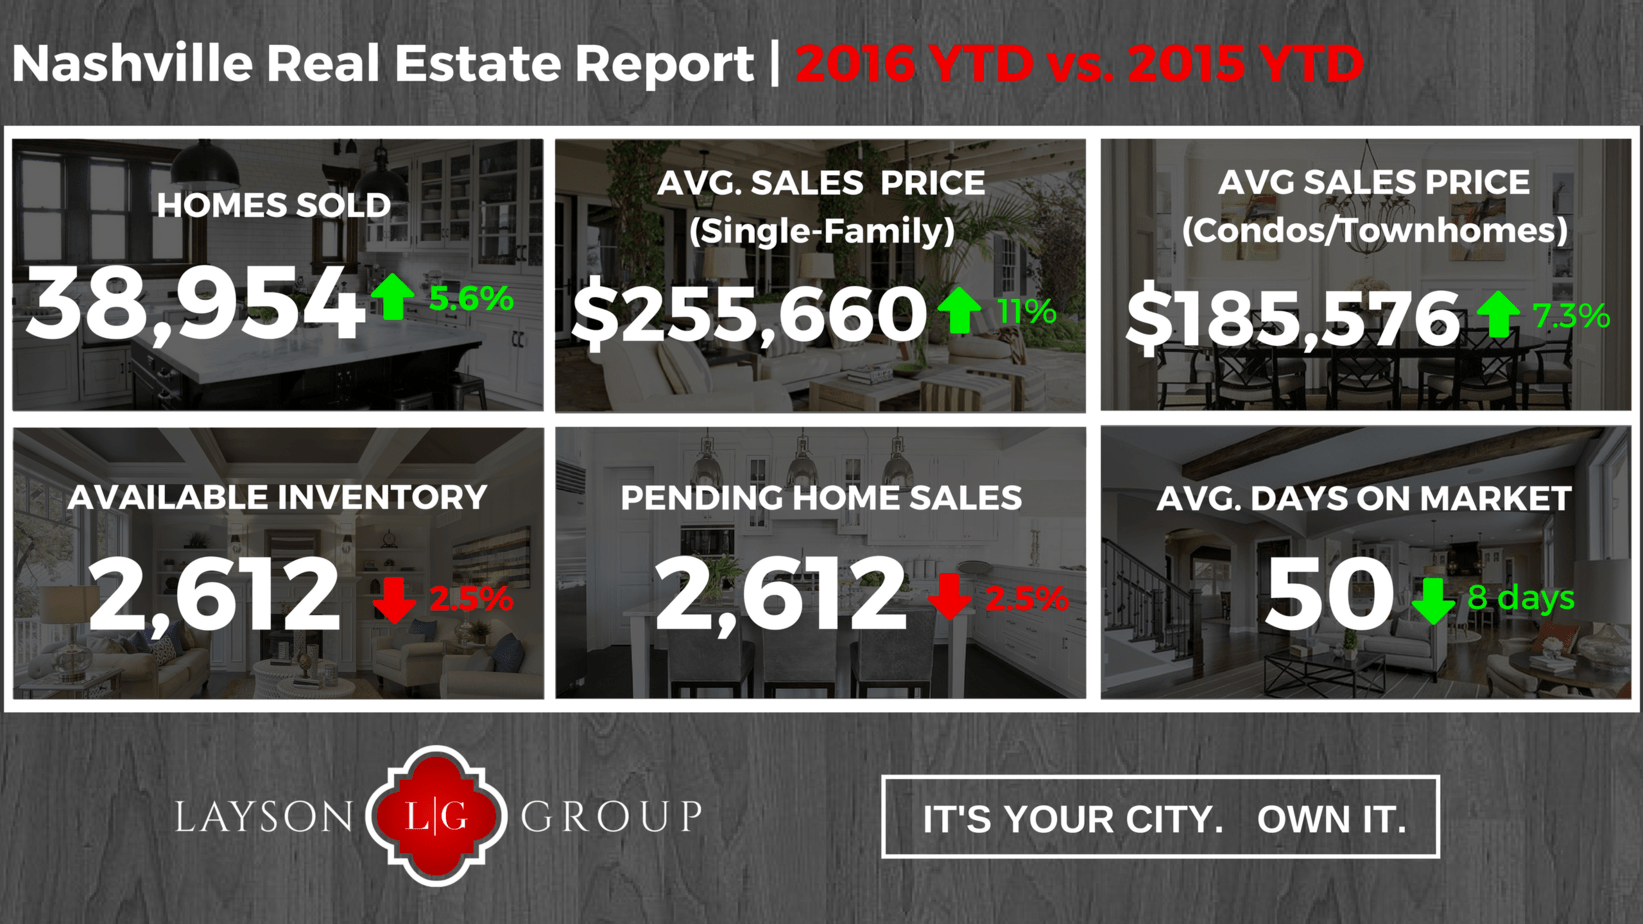 Nashville Real Estate YTD 206